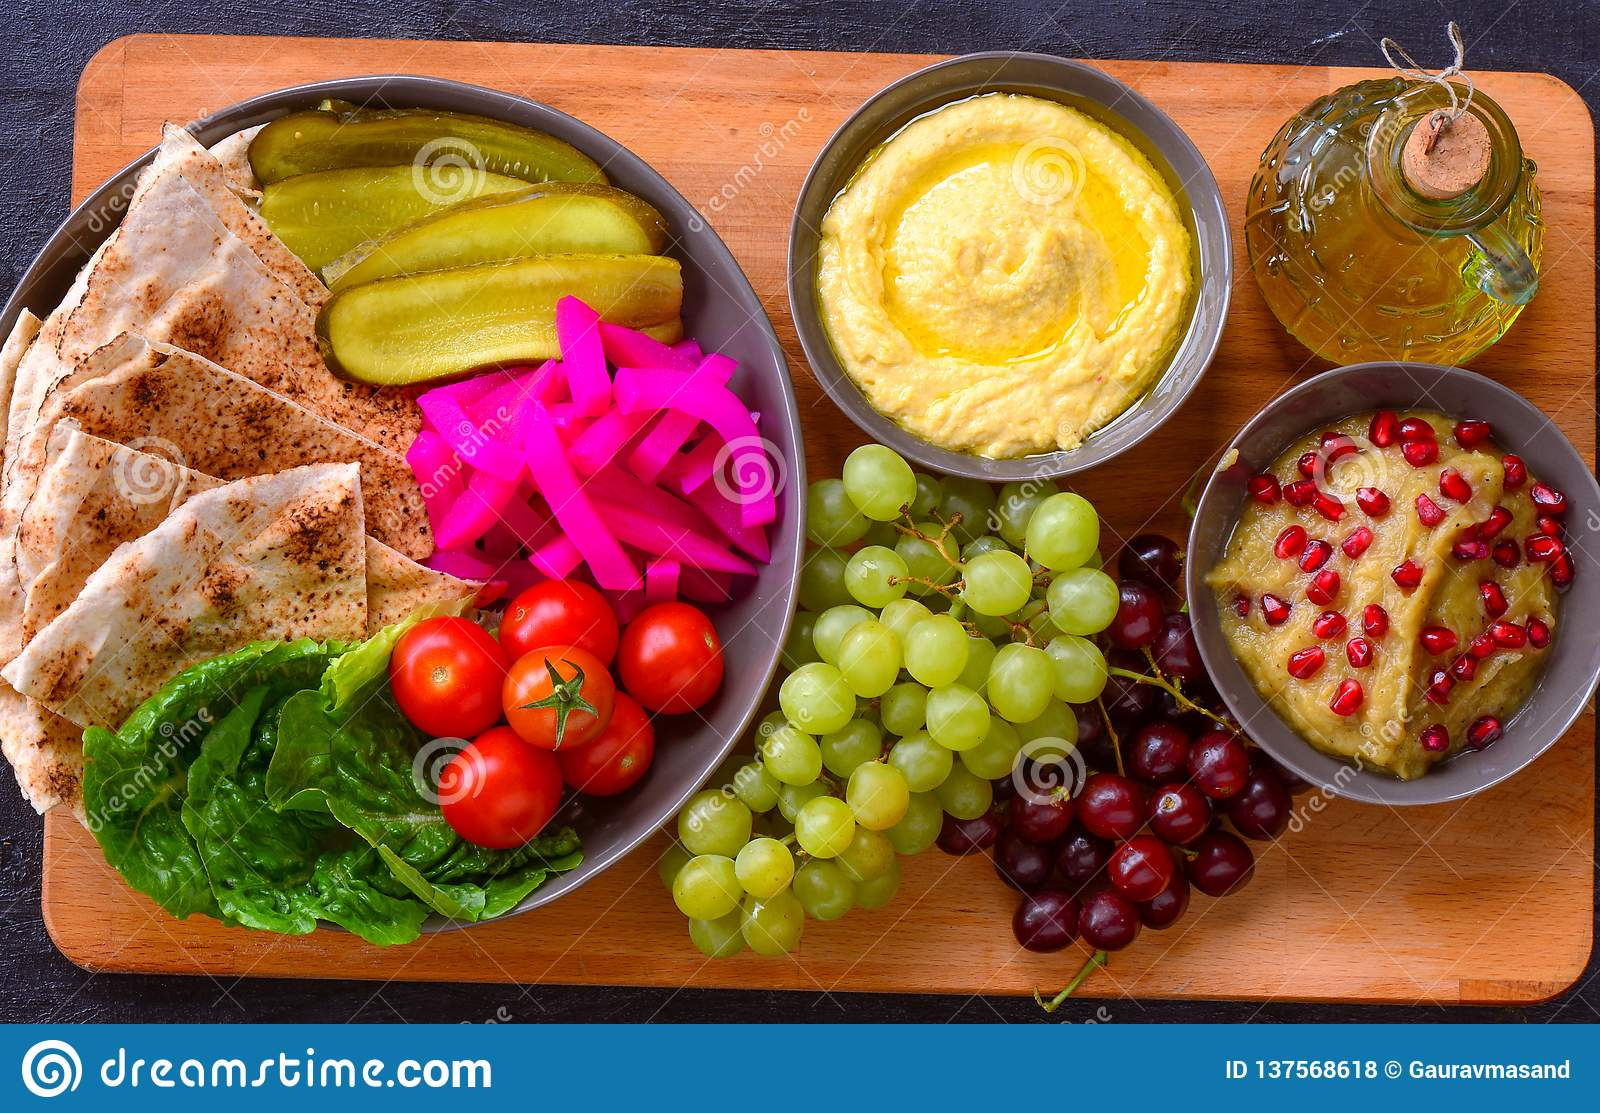 Mediterrane Küche An Bord Turkish Mediterranean Platter On Wooden Board Stock Photo Image